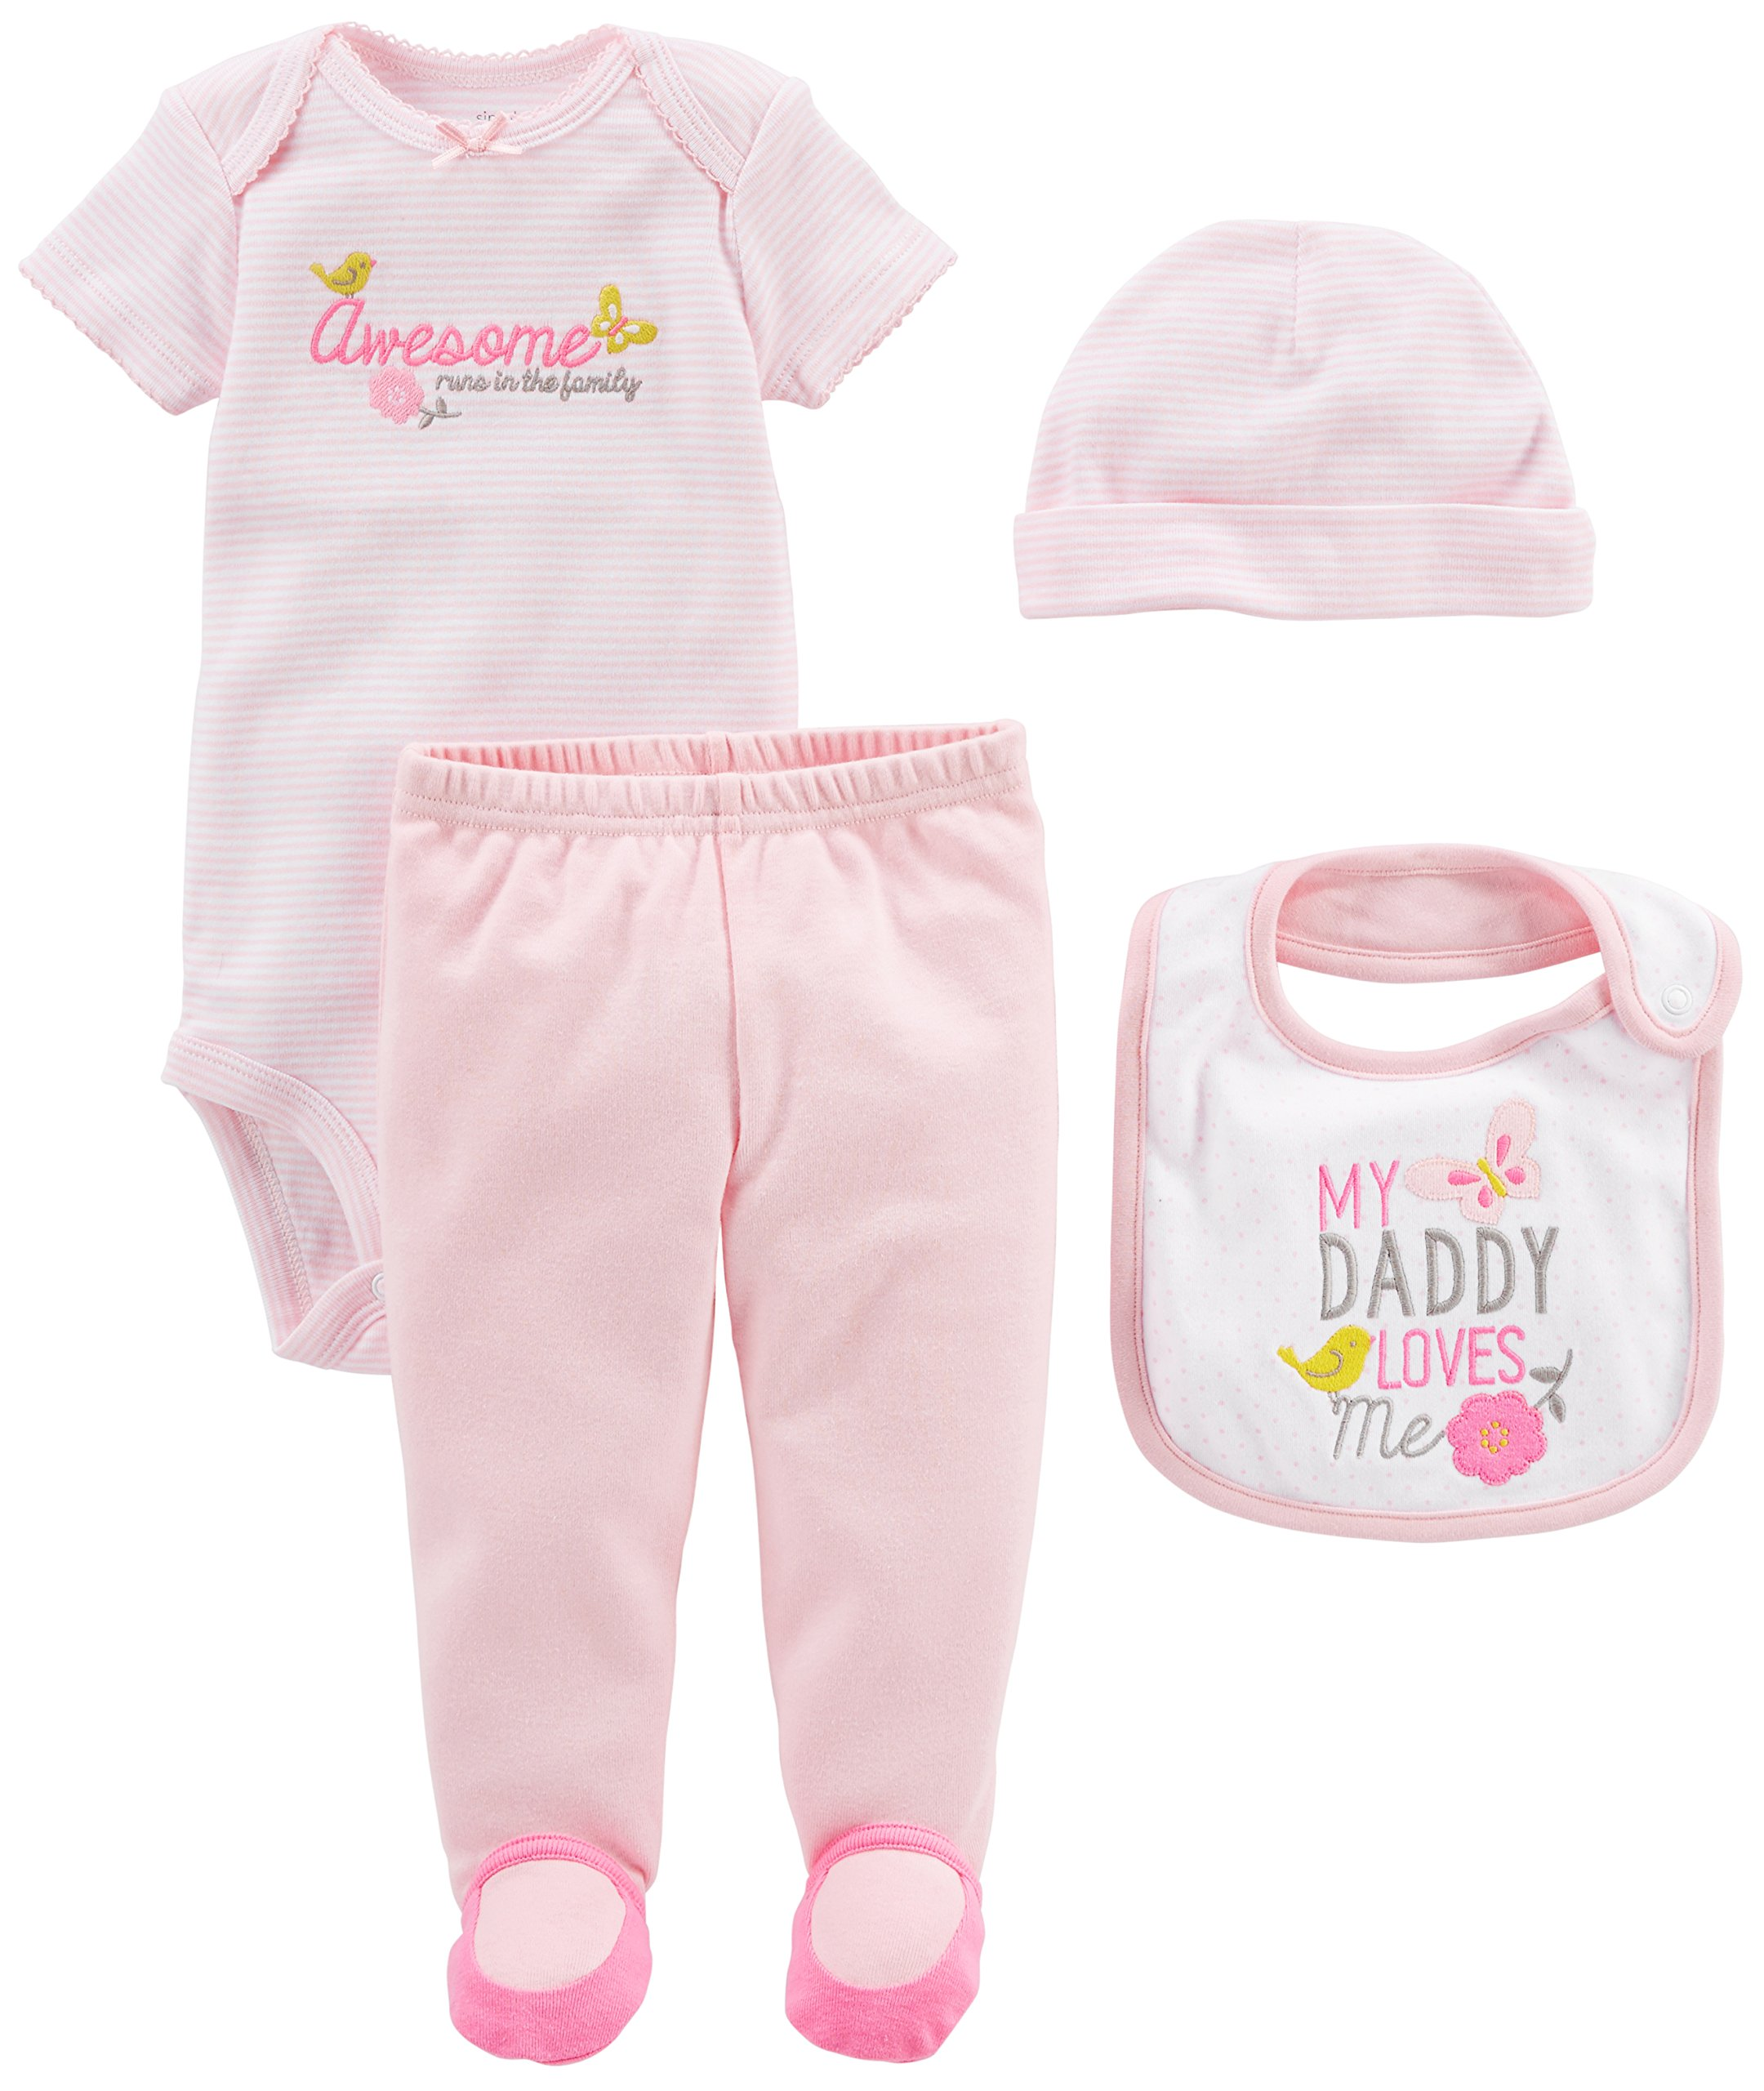 Simple Joys by Carter's Baby Girls' 4-Piece Bodysuit, Pant, Bib and Cap Set, Pink Daddy Loves Me, 6-9 Months